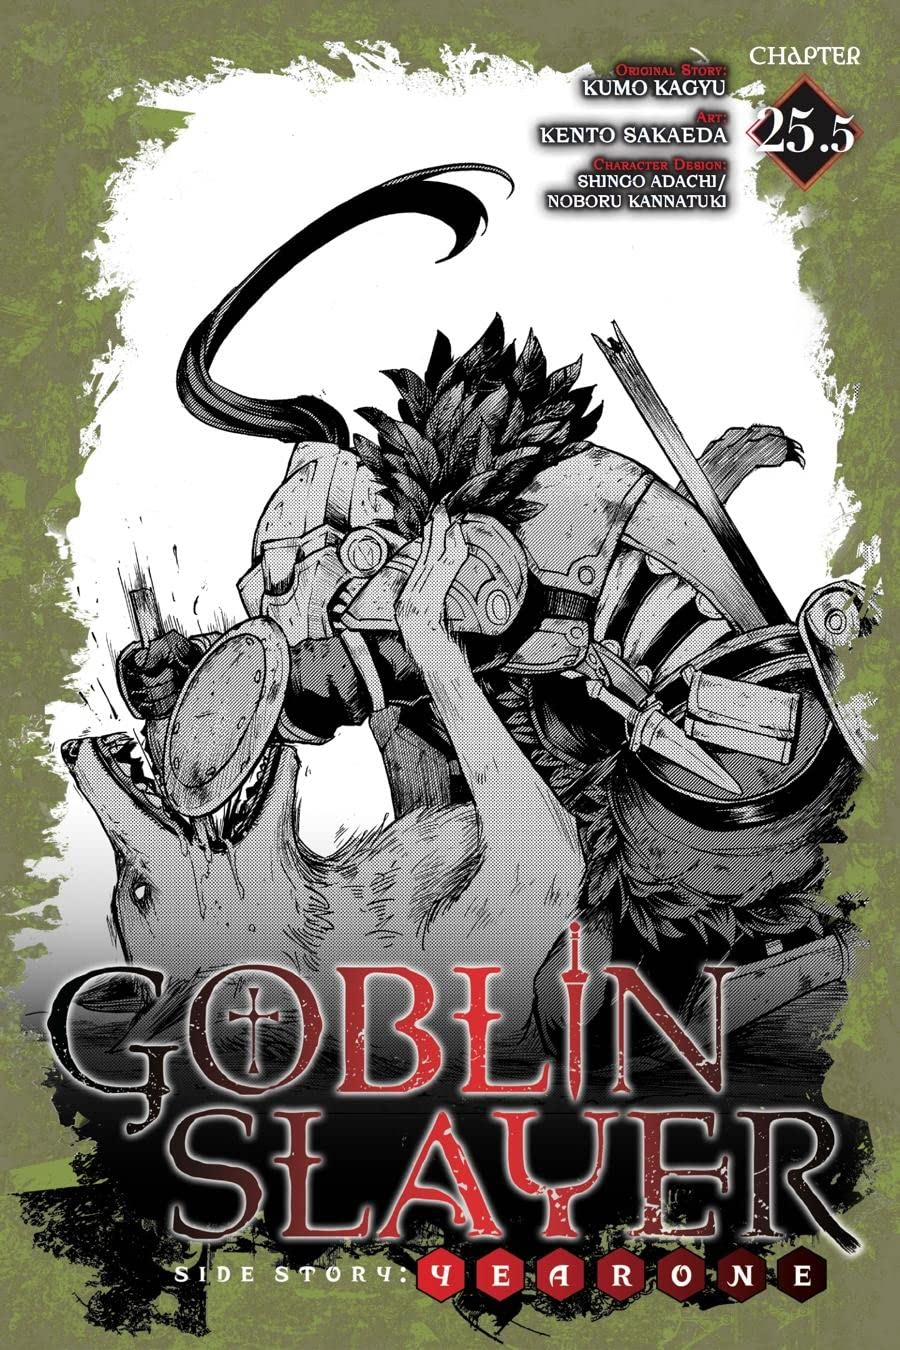 Goblin Slayer Side Story: Year One No.25.5